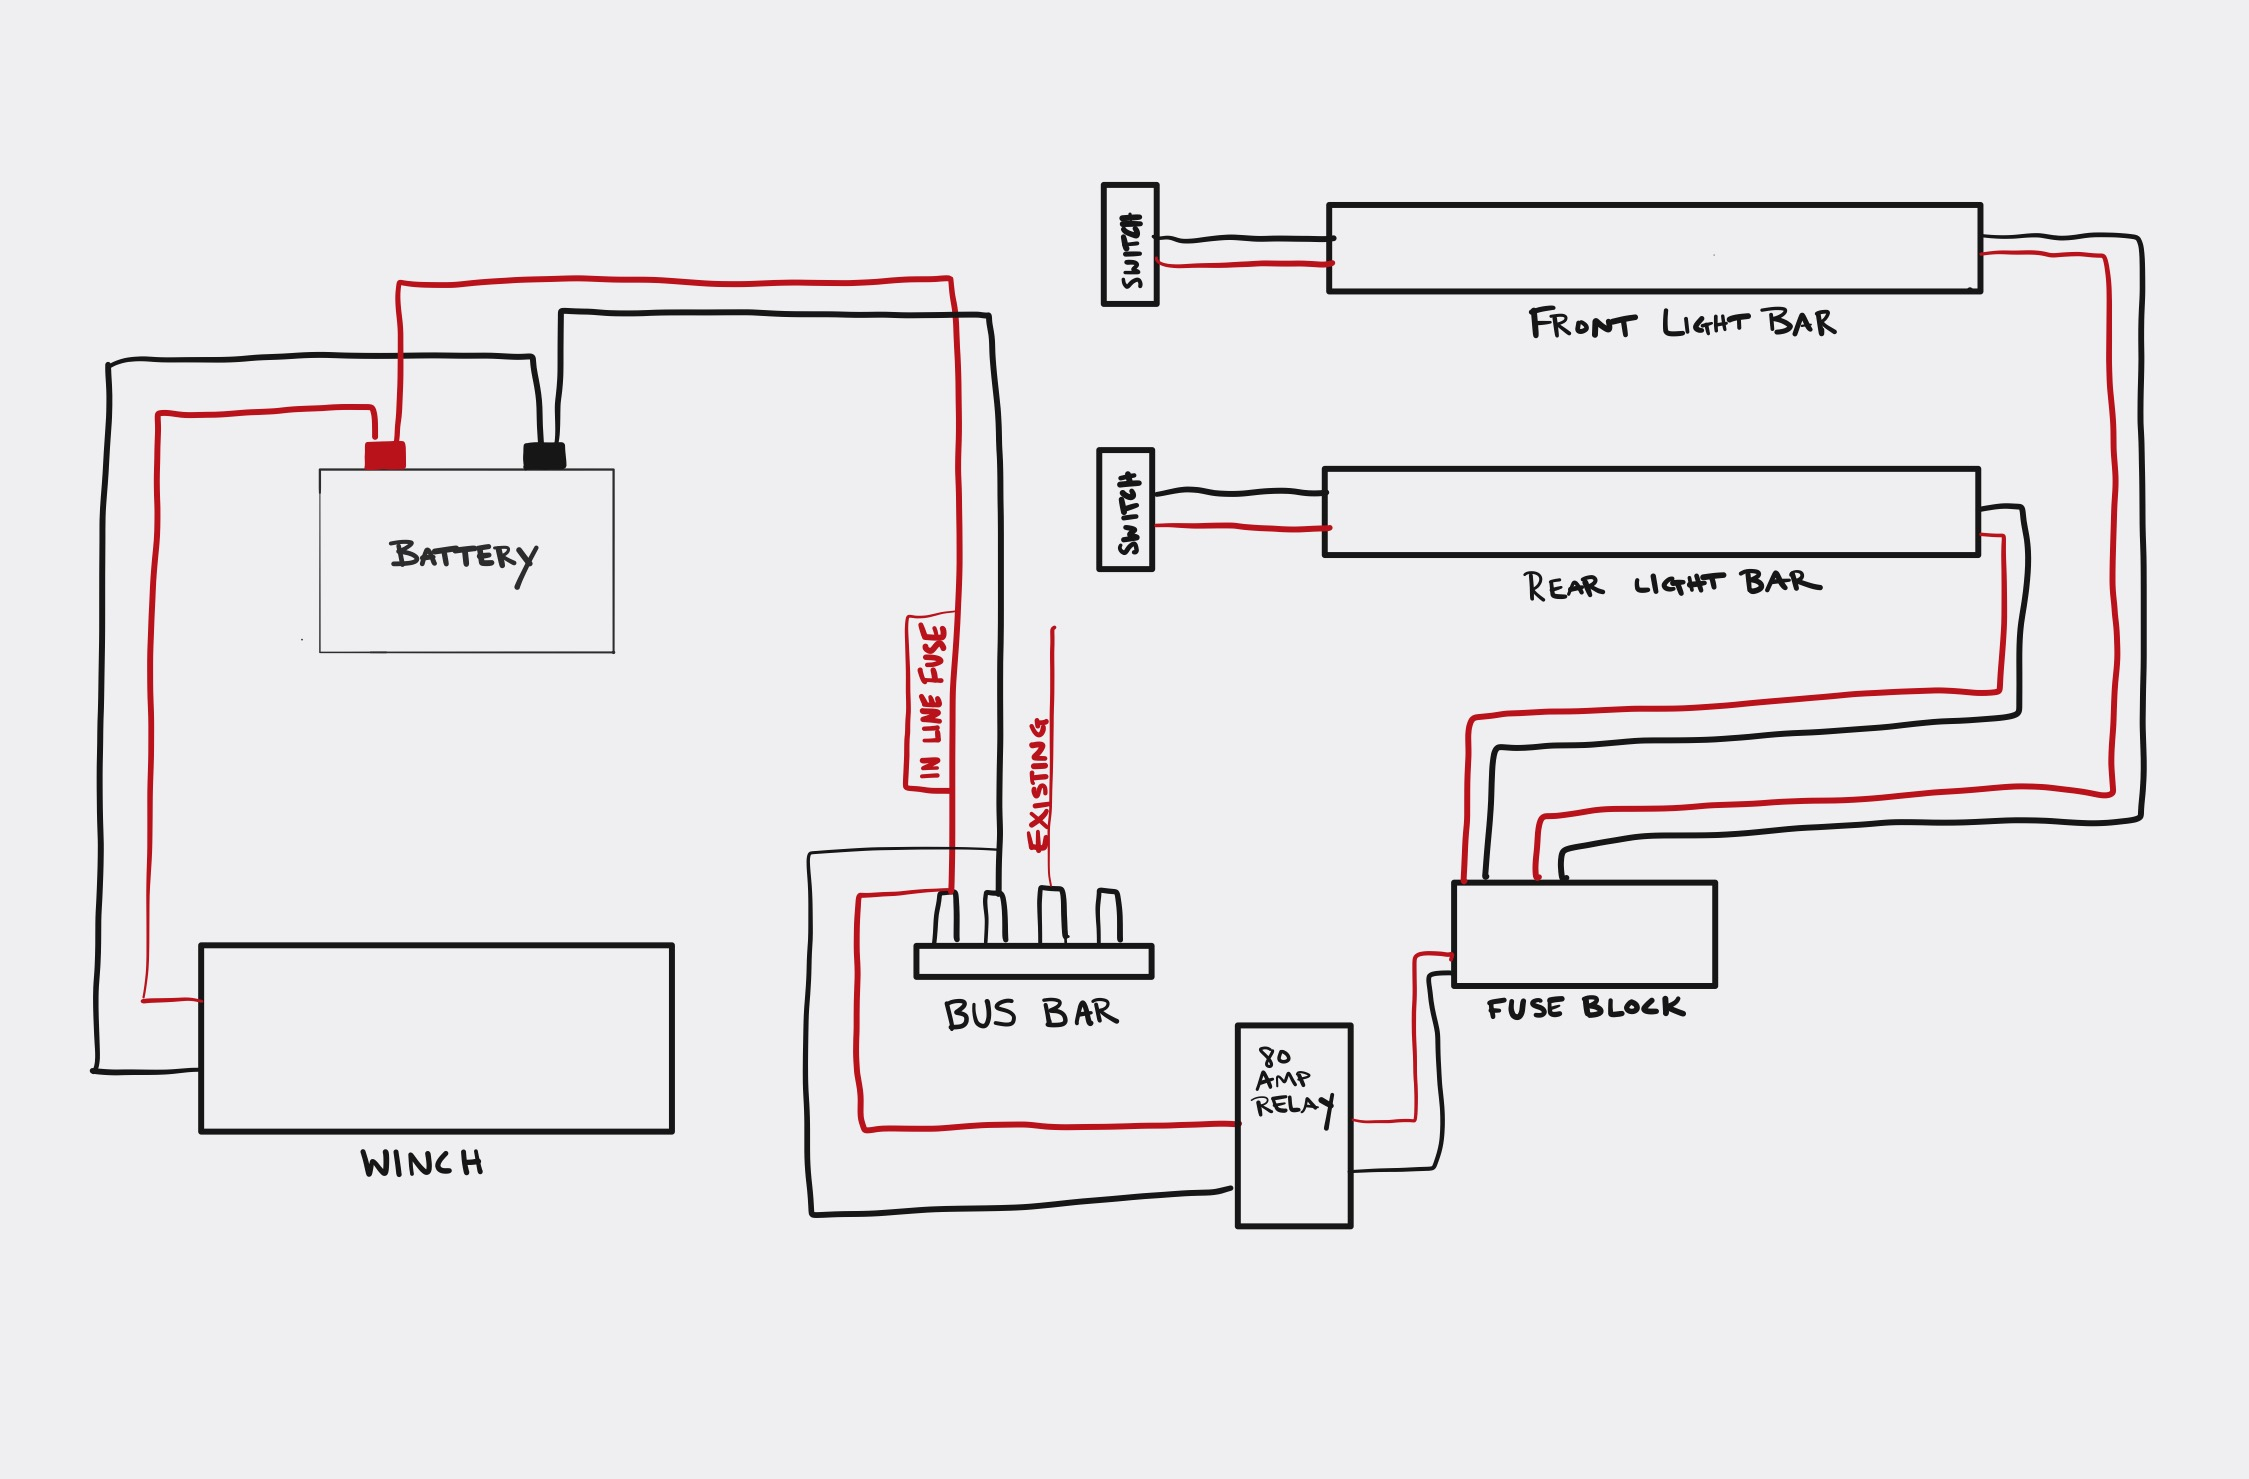 50482d1469927232 wiring diagram please check me image_1469927228473 wiring diagram please check this for me rigid dually wiring diagram at gsmx.co